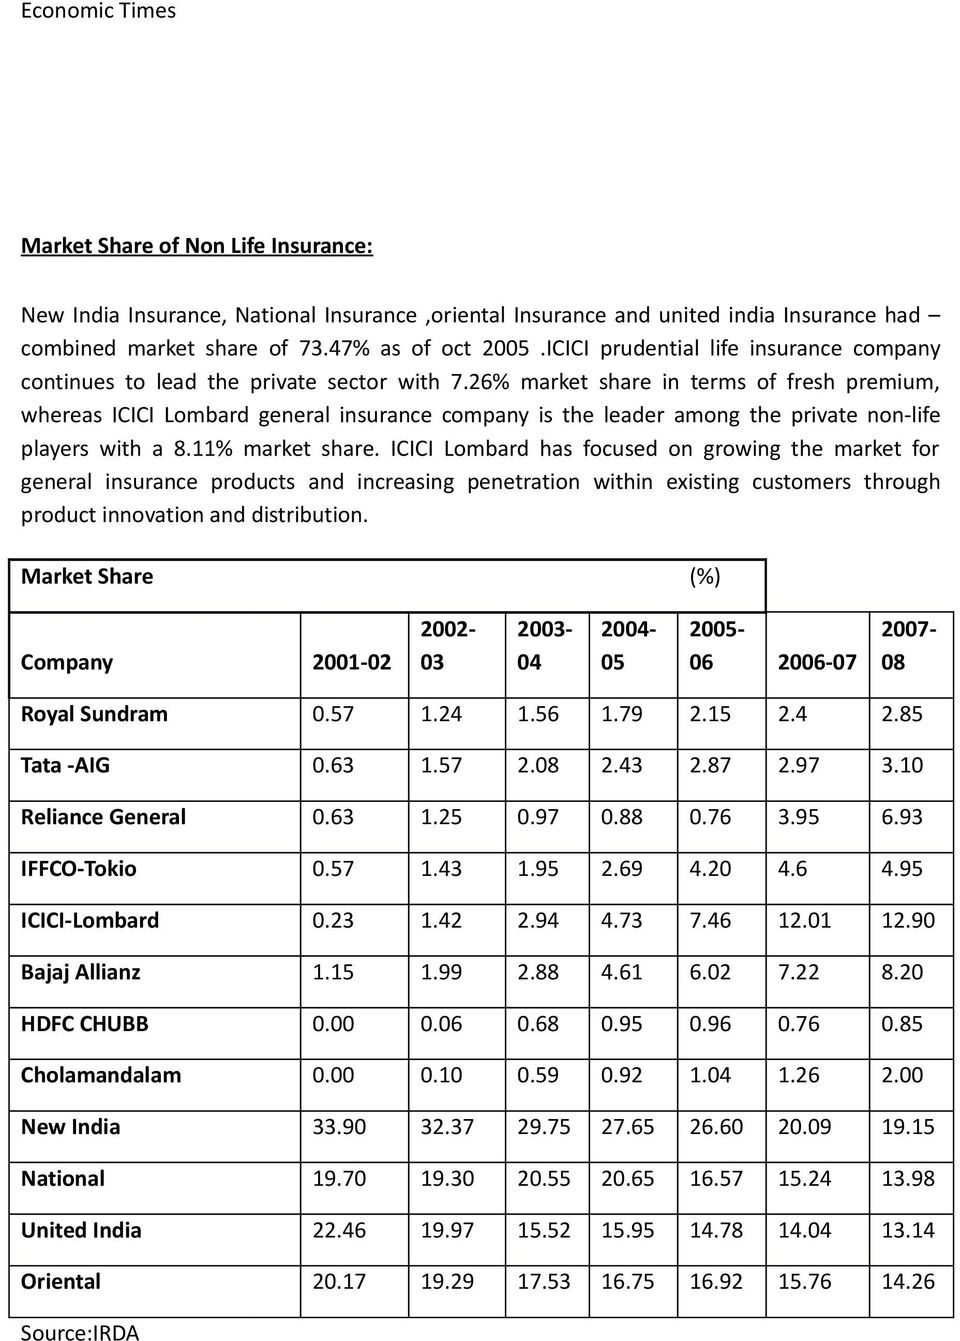 26% market share in terms of fresh premium, whereas ICICI Lombard general insurance company is the leader among the private non-life players with a 8.11% market share.